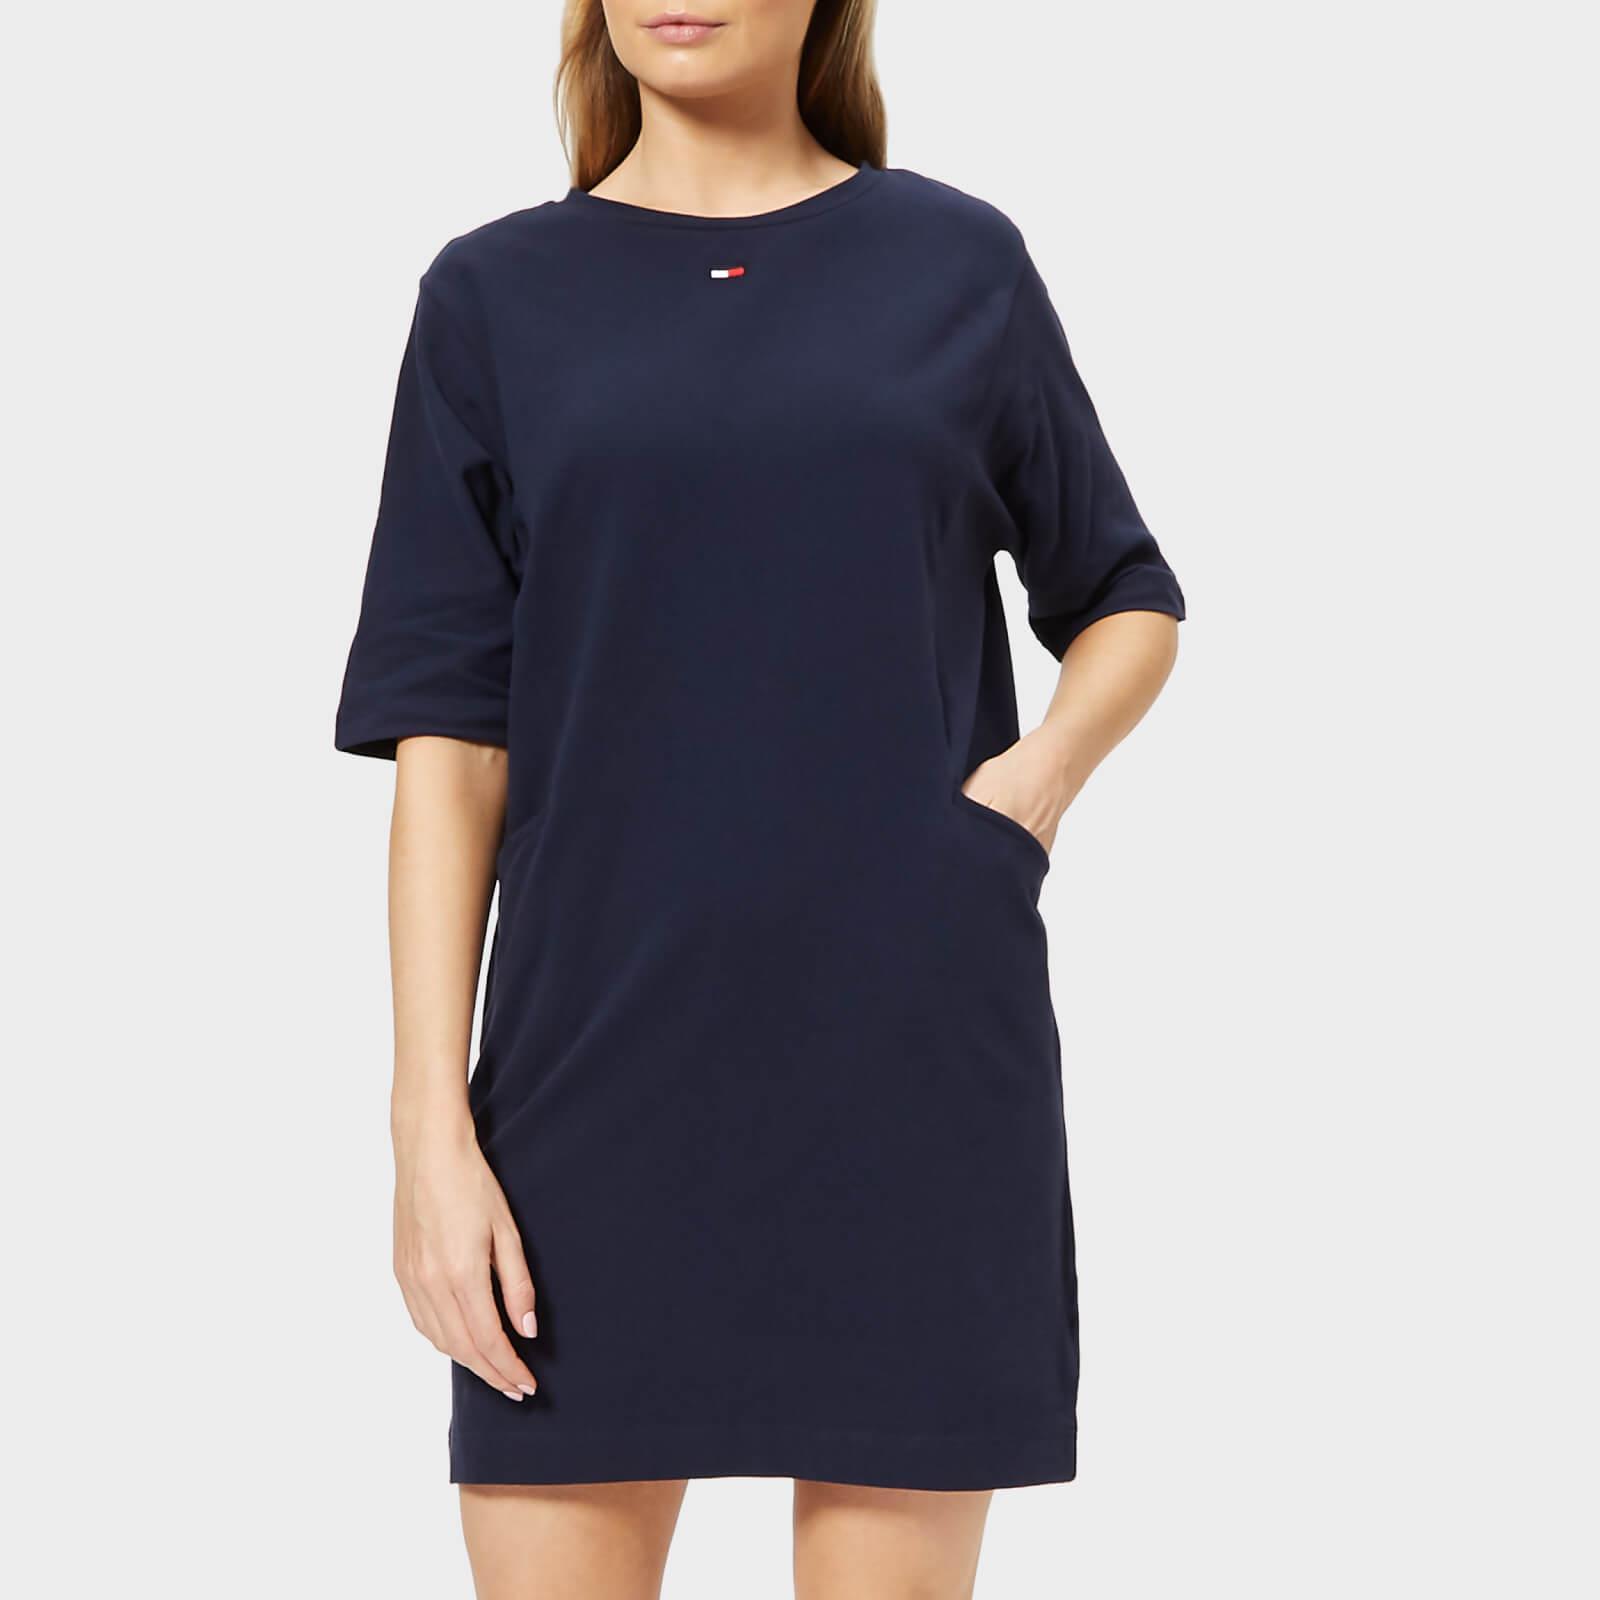 Tommy Hilfiger Heavyweight Knitted Dress in Blue - Lyst 8846648cd75